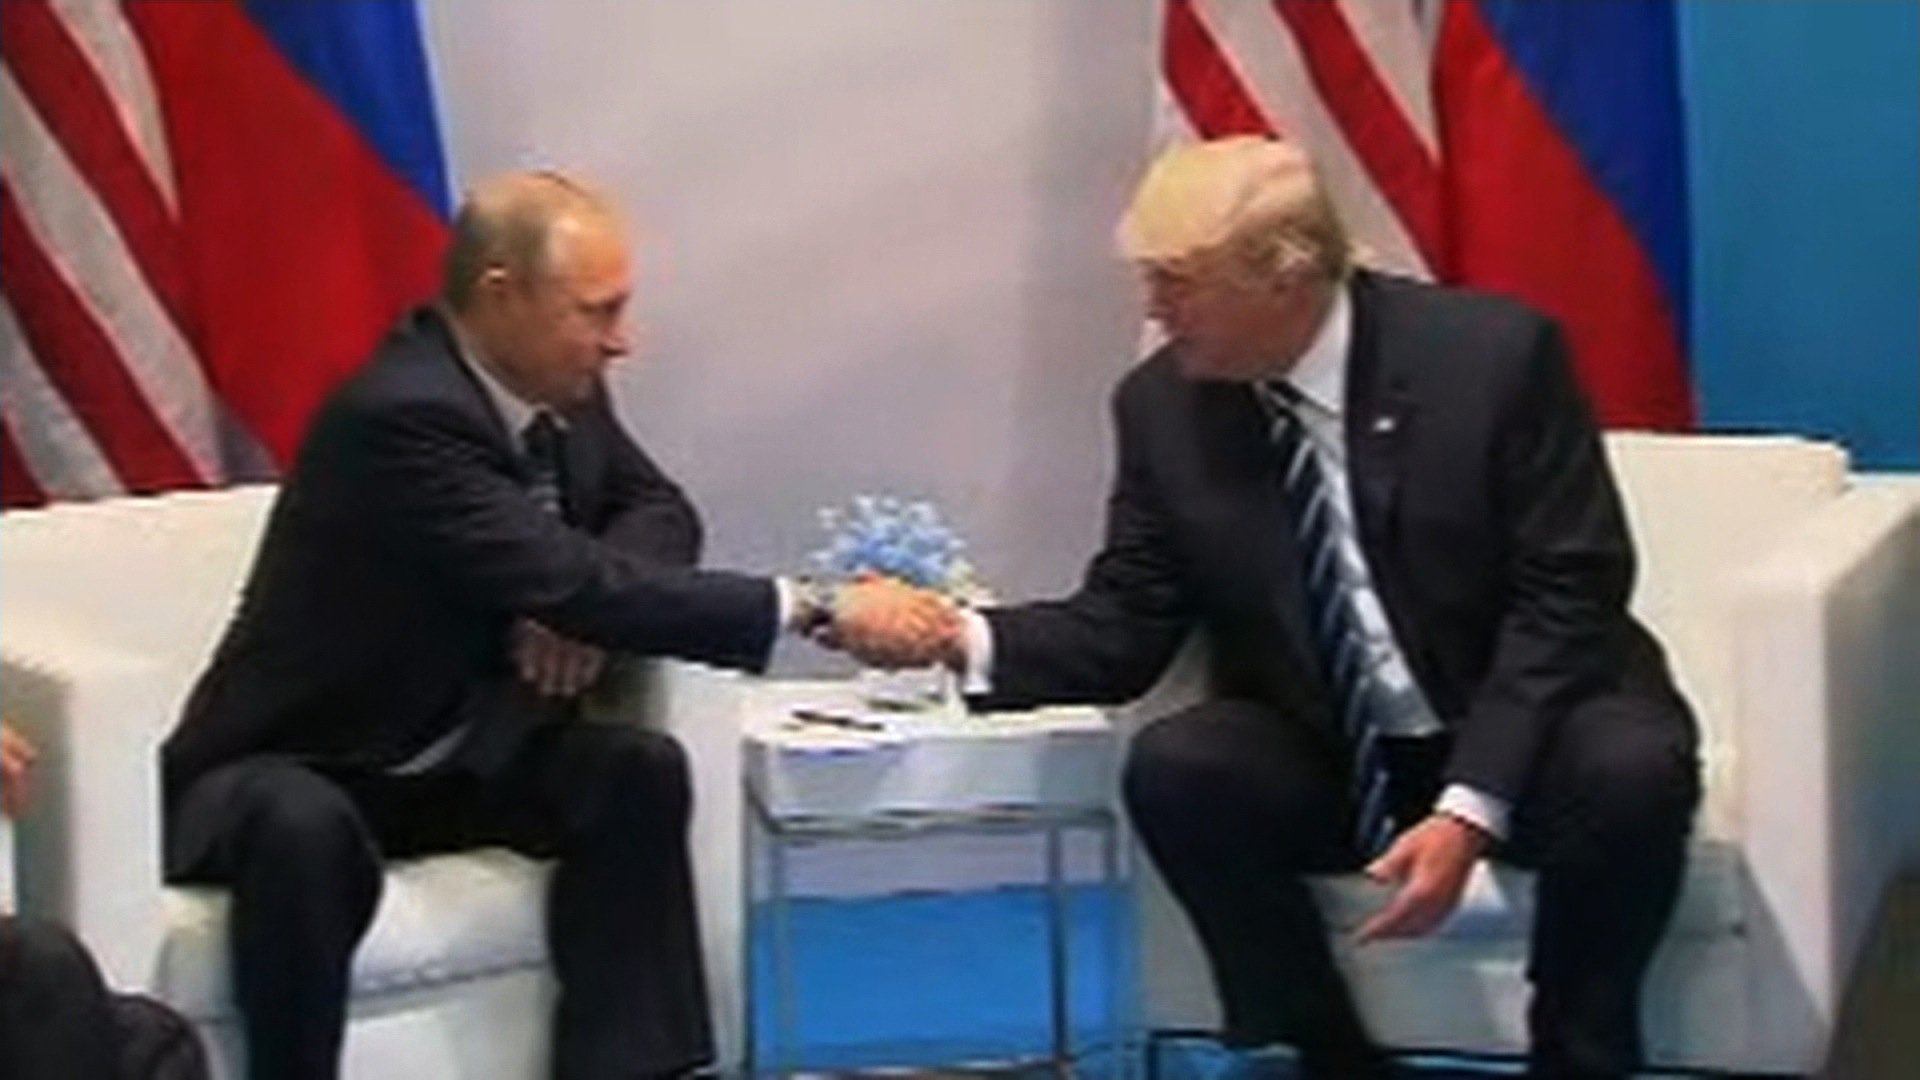 President Donald Trump and Russian President Vladimir Putin shake hands